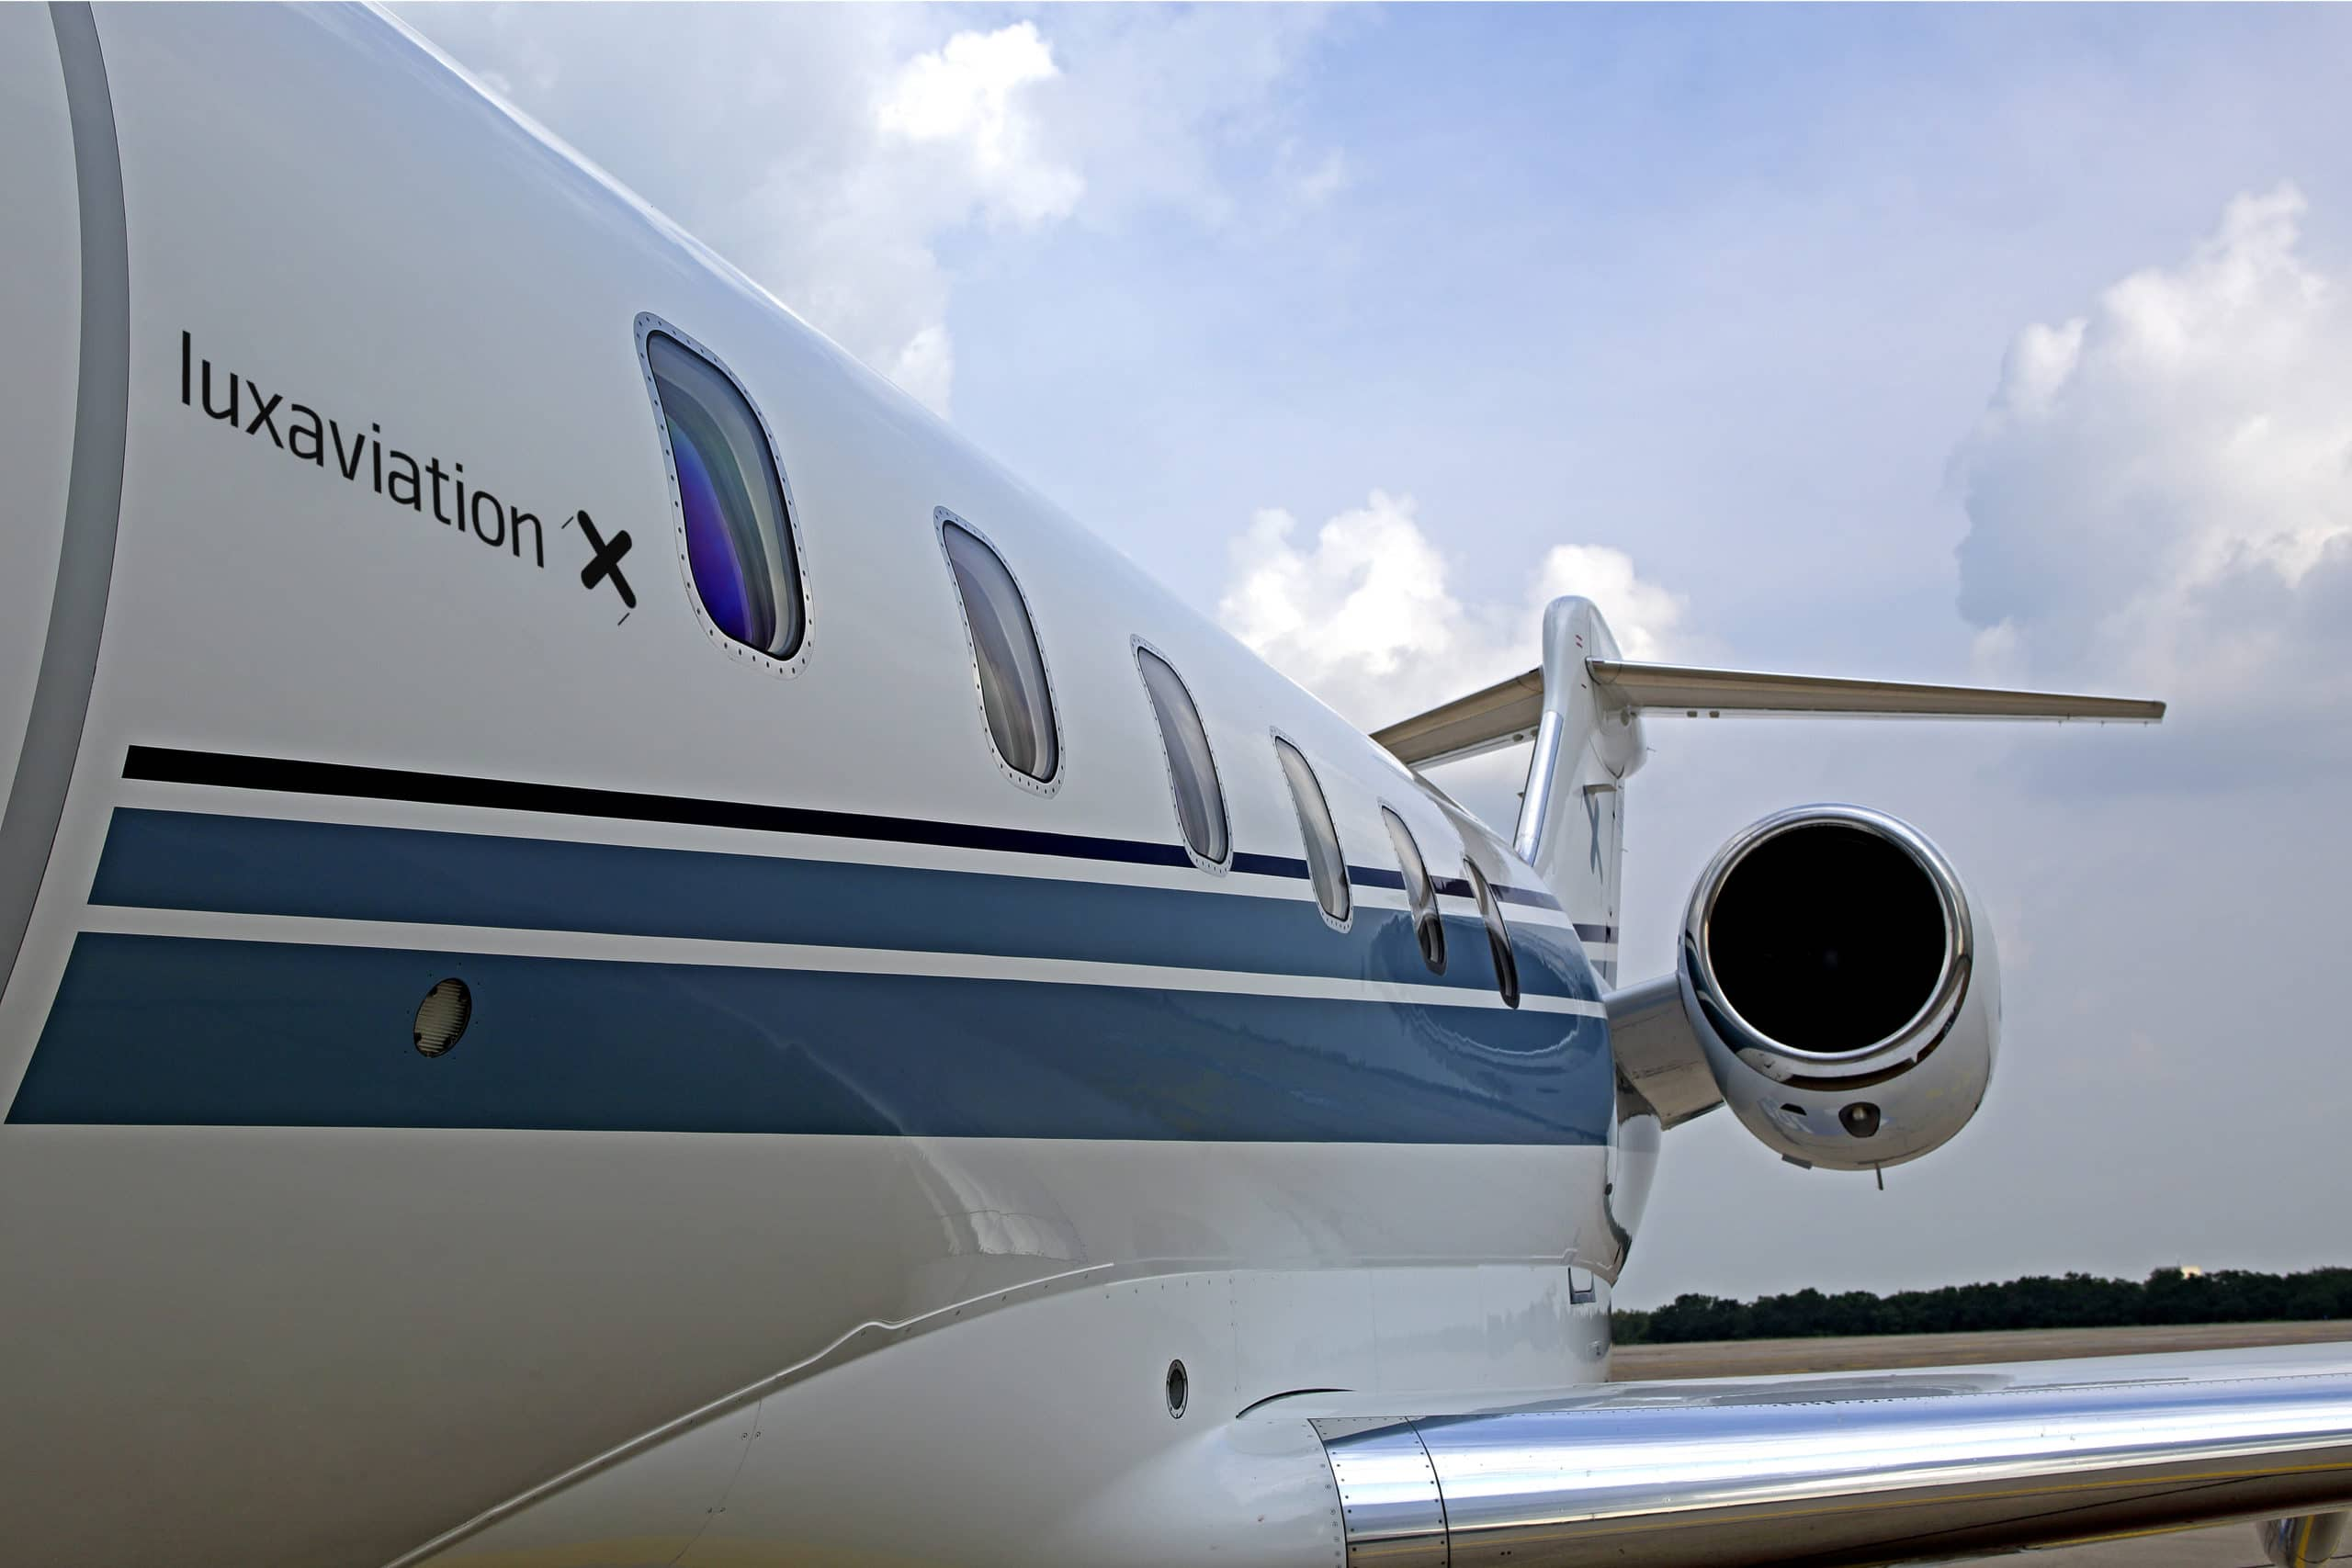 Luxaviation Group disrupting European aviation market: first business aircraft operator under EASA European AOC